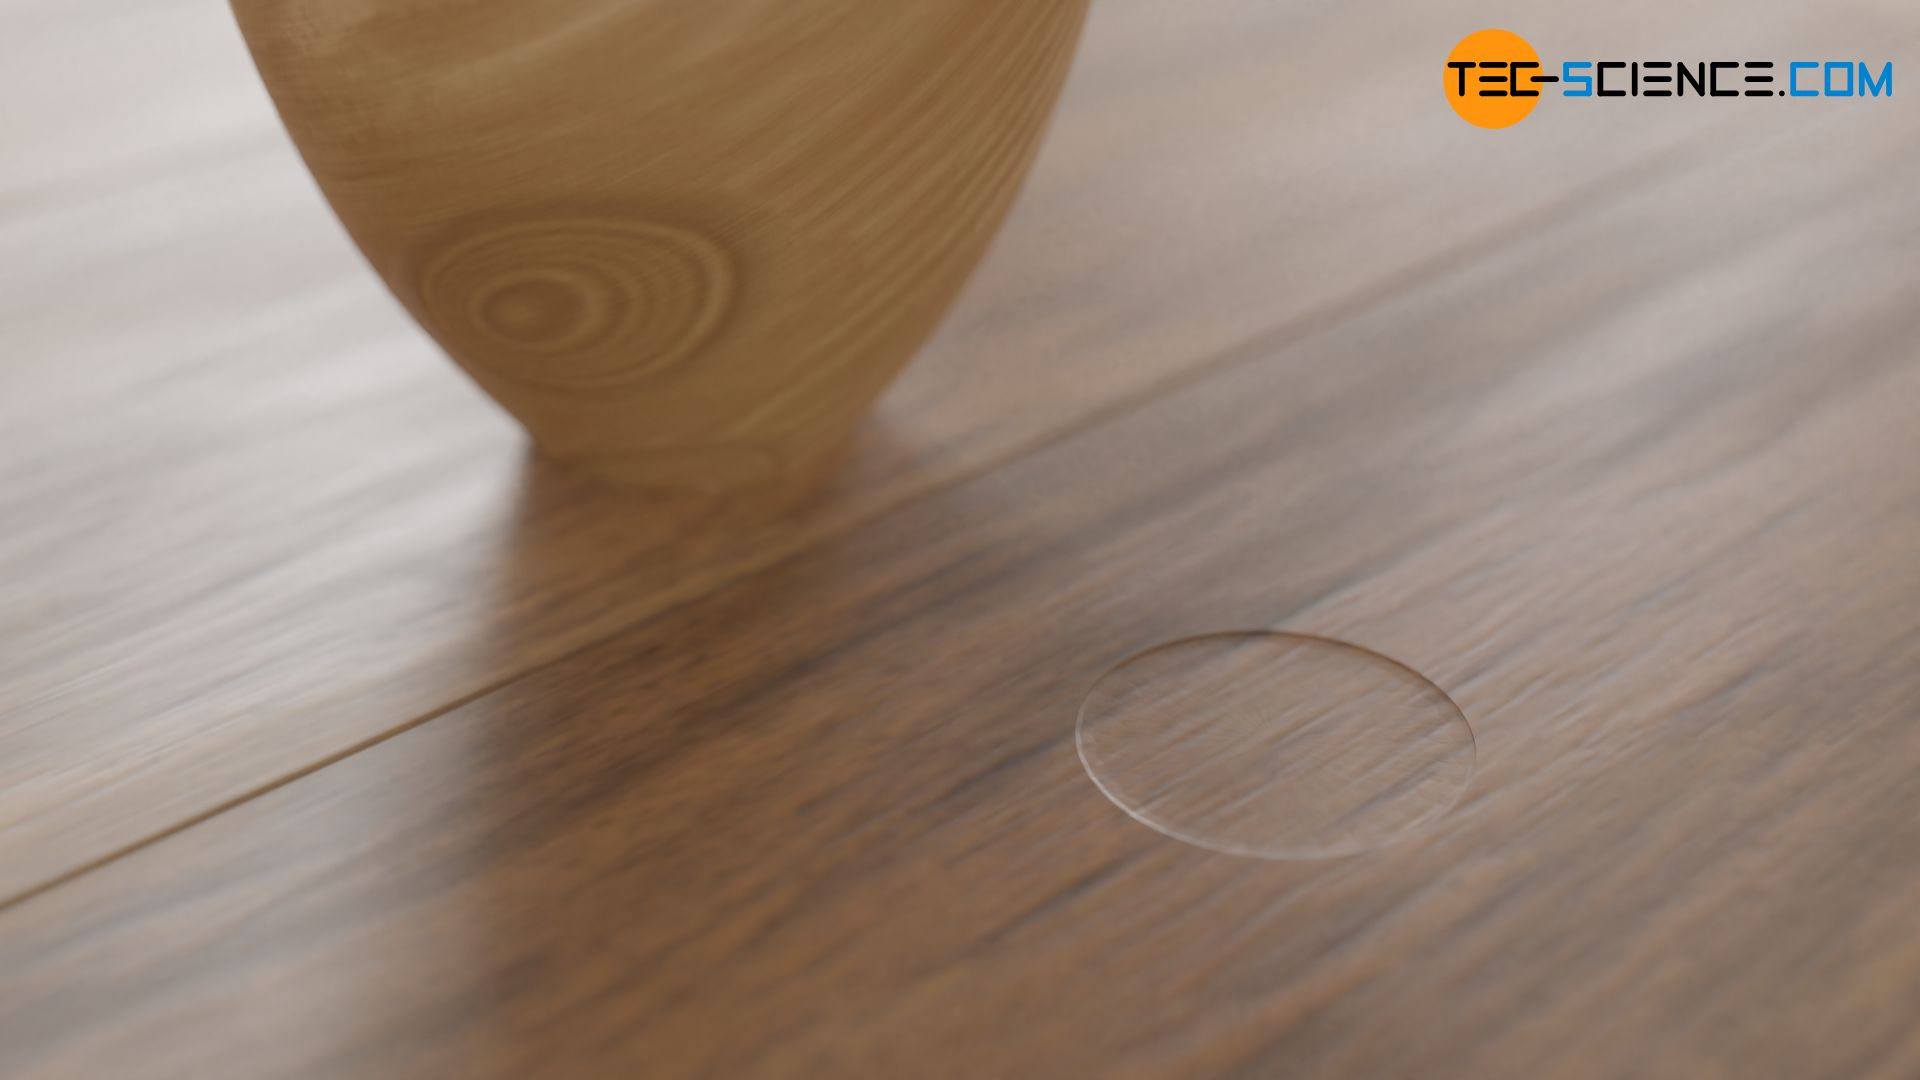 Pressure mark of a heavy table on a floor